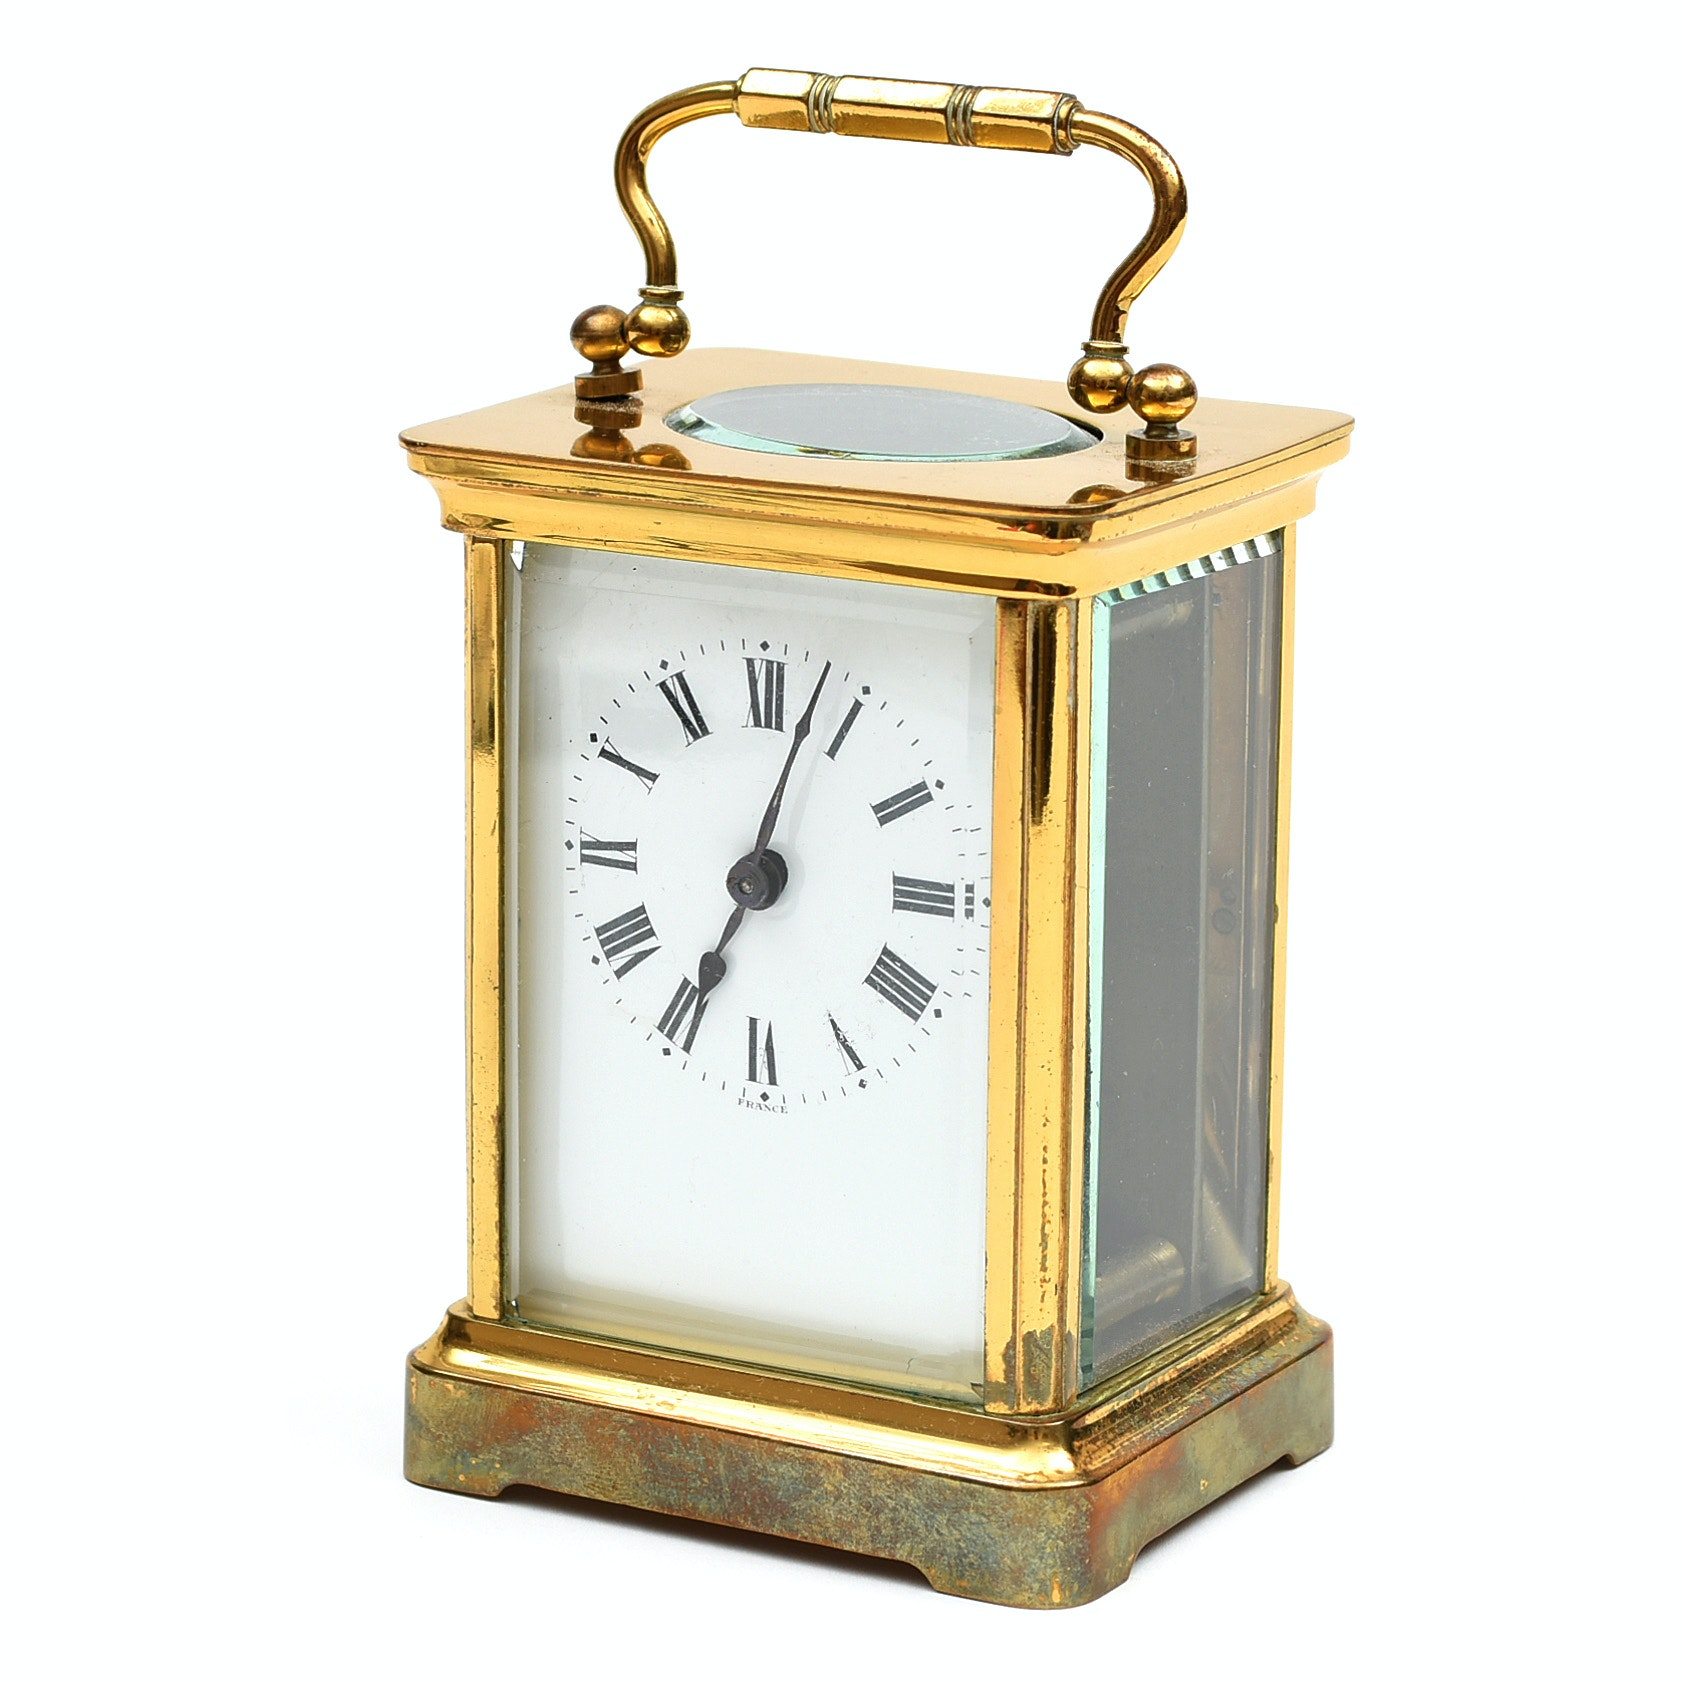 Duverdrey & Bloquel Brass Carriage Clock, Made in France